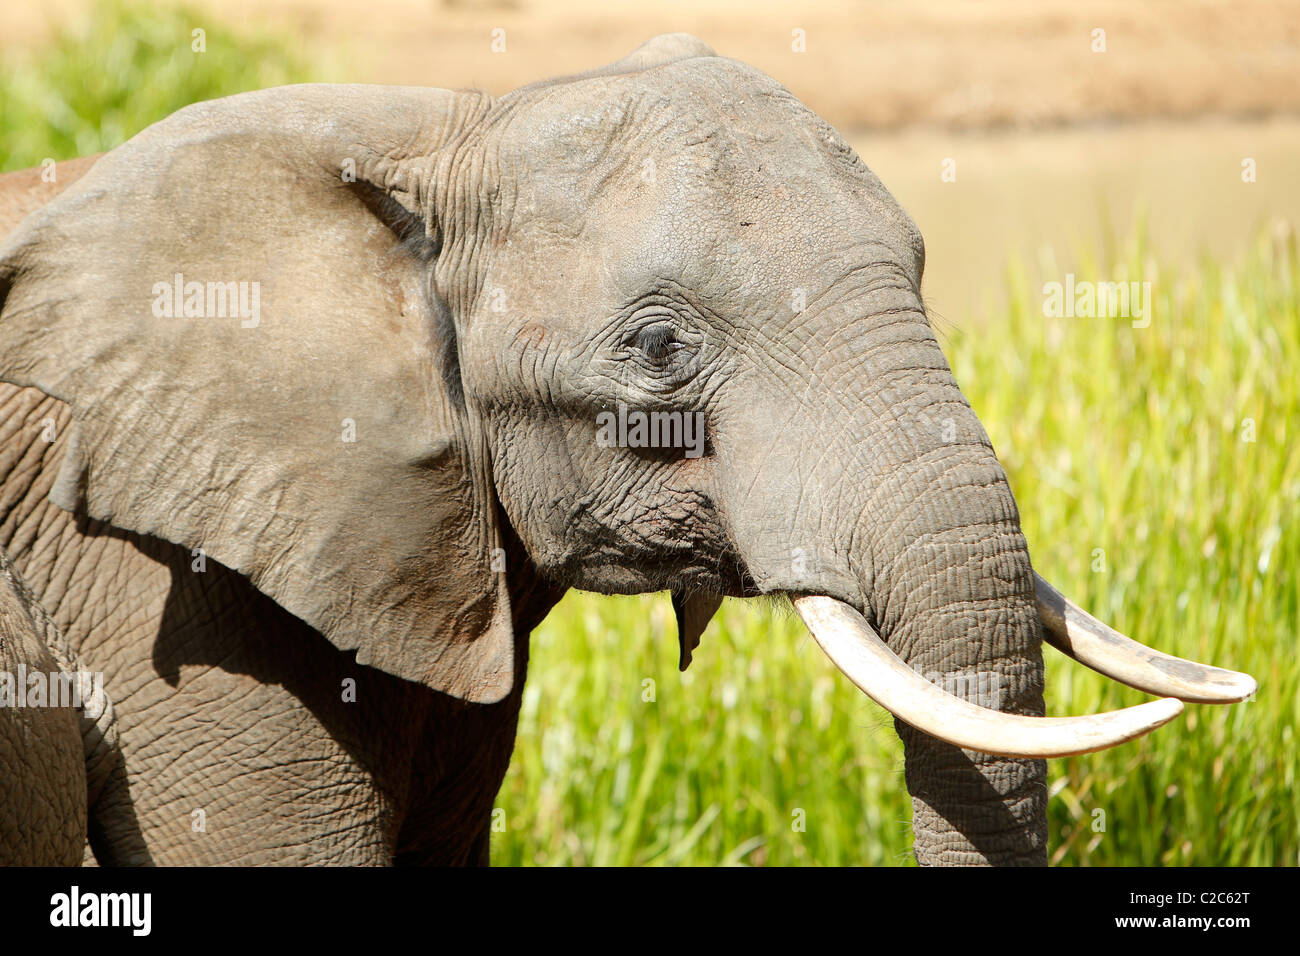 An African Elephant at a watering hole in Kenya Stock Photo